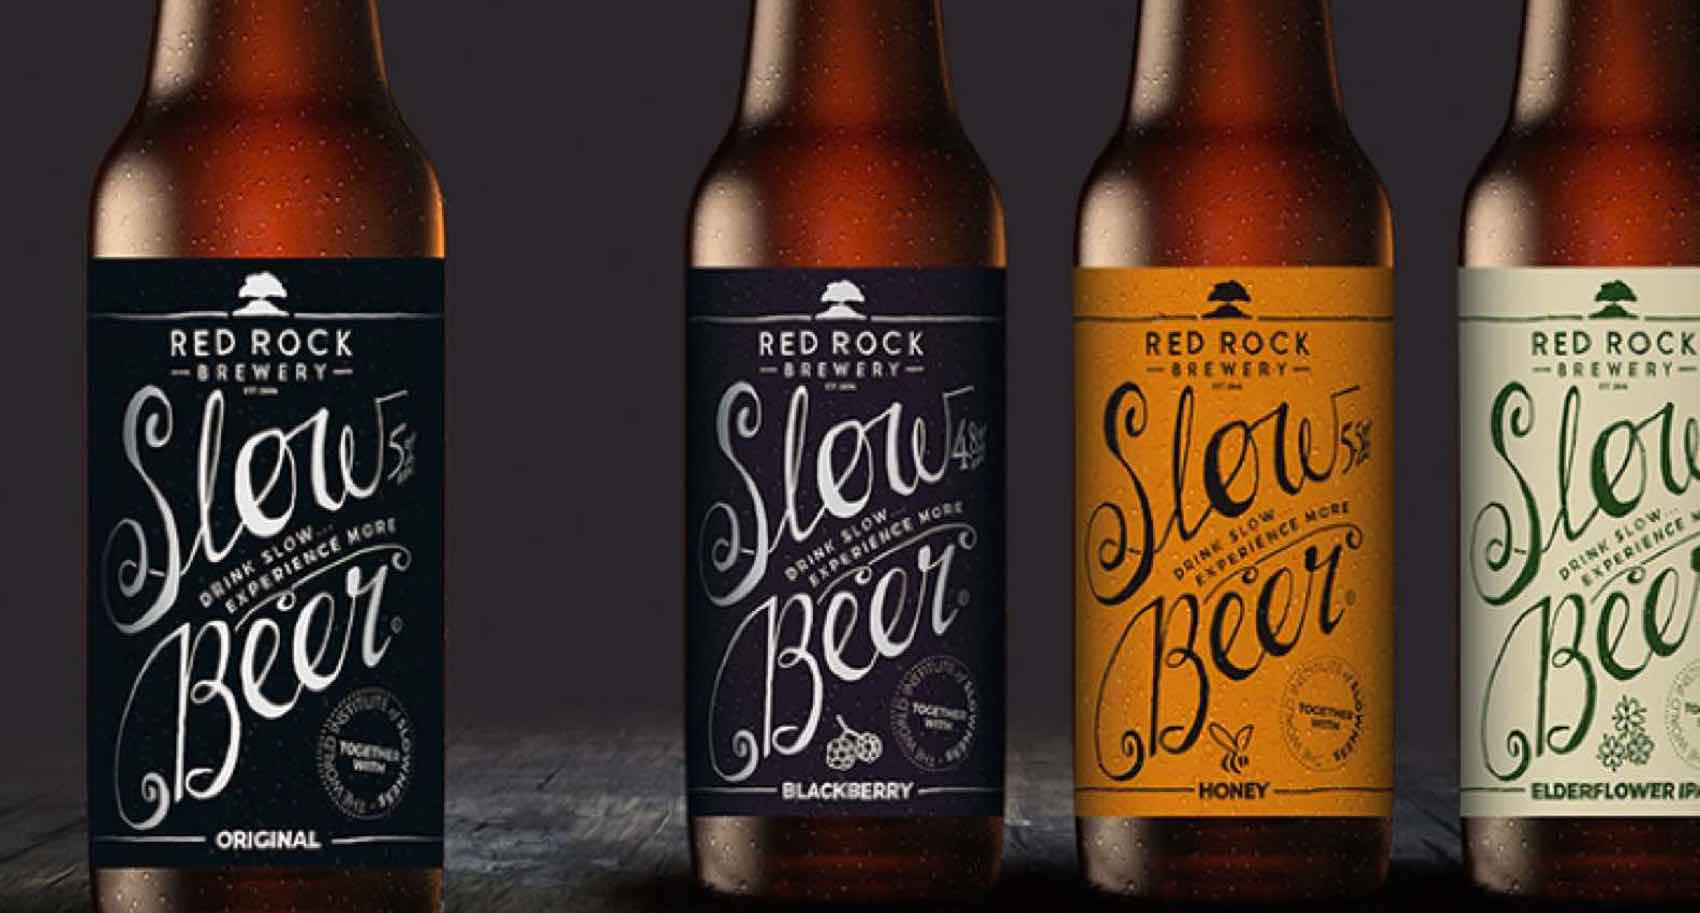 Beer or not..: The art of brewing the slowest beer in the world. Slow beer from Higher Humper Farm in Devon, England.